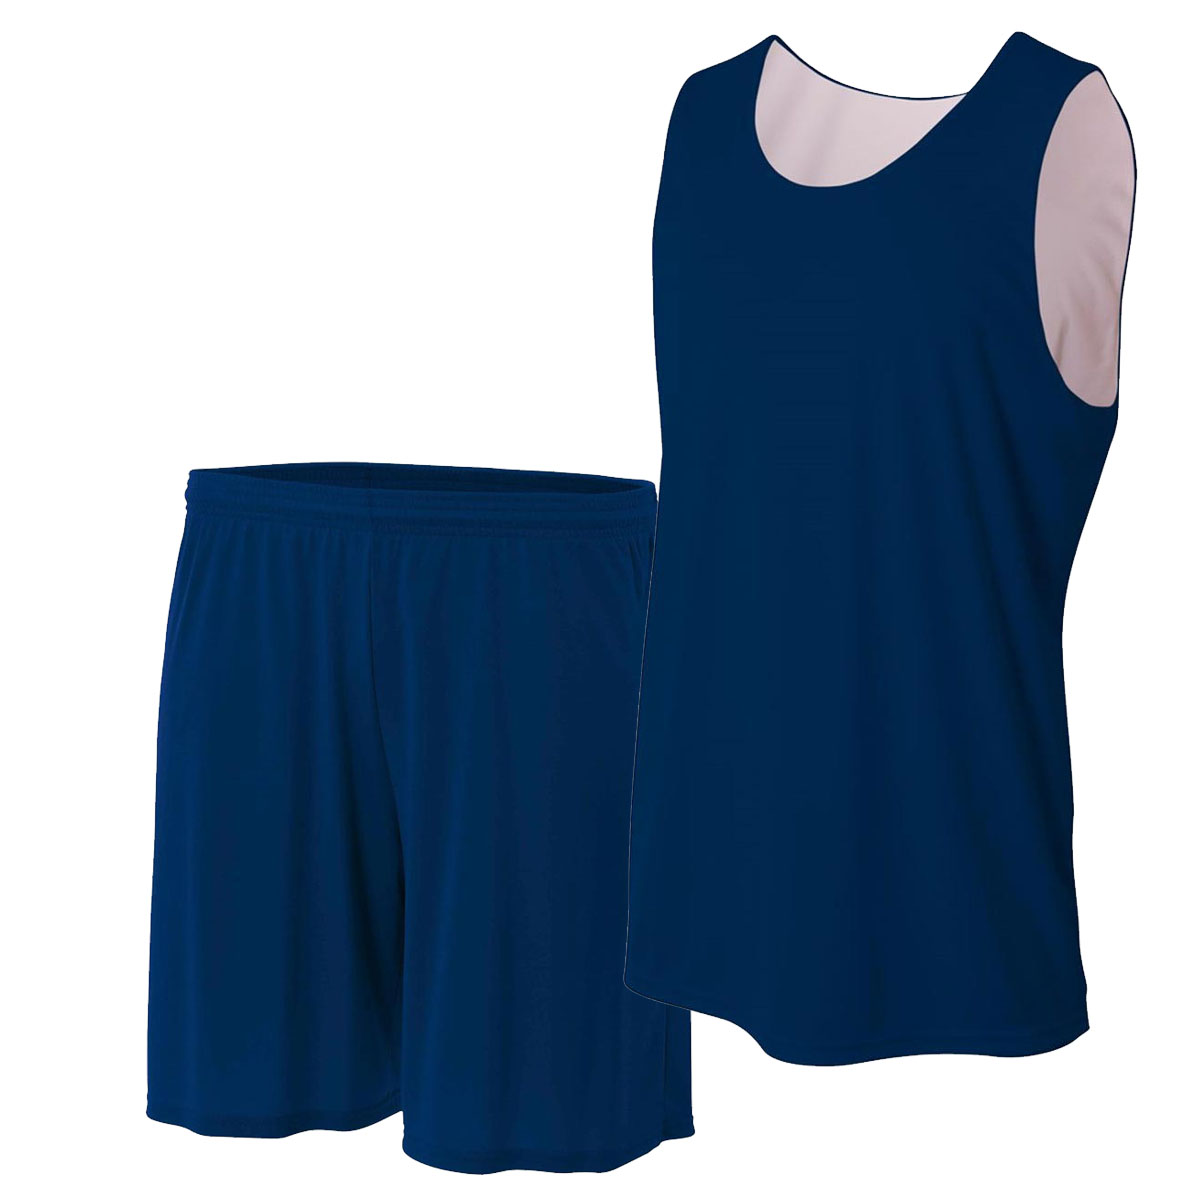 Reversible Basketball Uniforms Manufacturers in Navi-mumbai